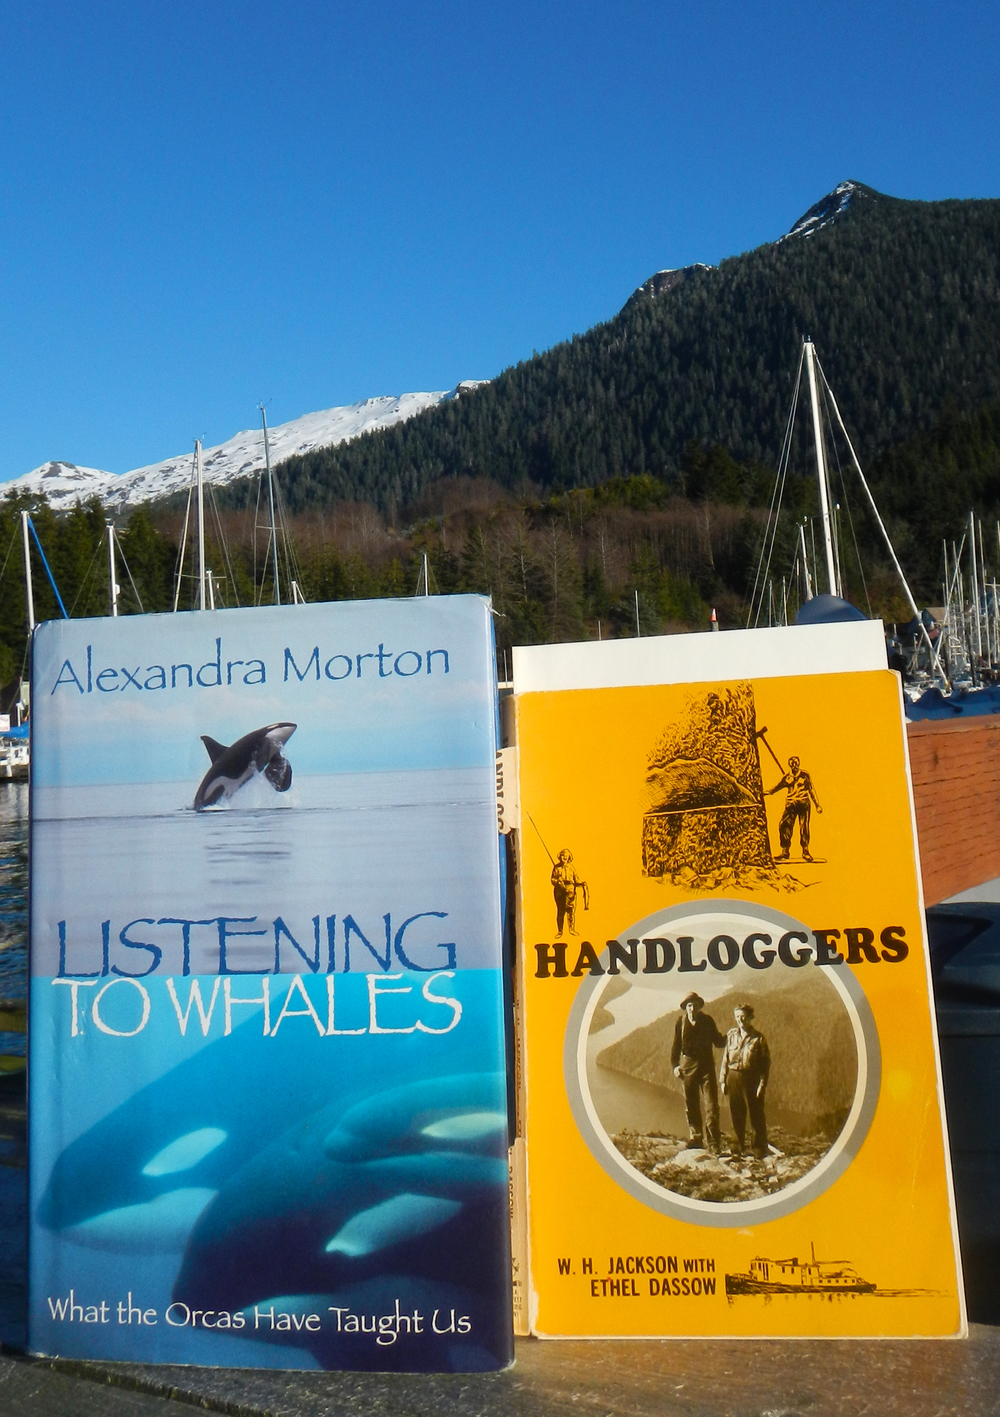 Two of my favorite books ever! Alexandra Morton's  Listening to Whales: What the Orcas Have Taught us  and W.H Jackson's  Handloggers.